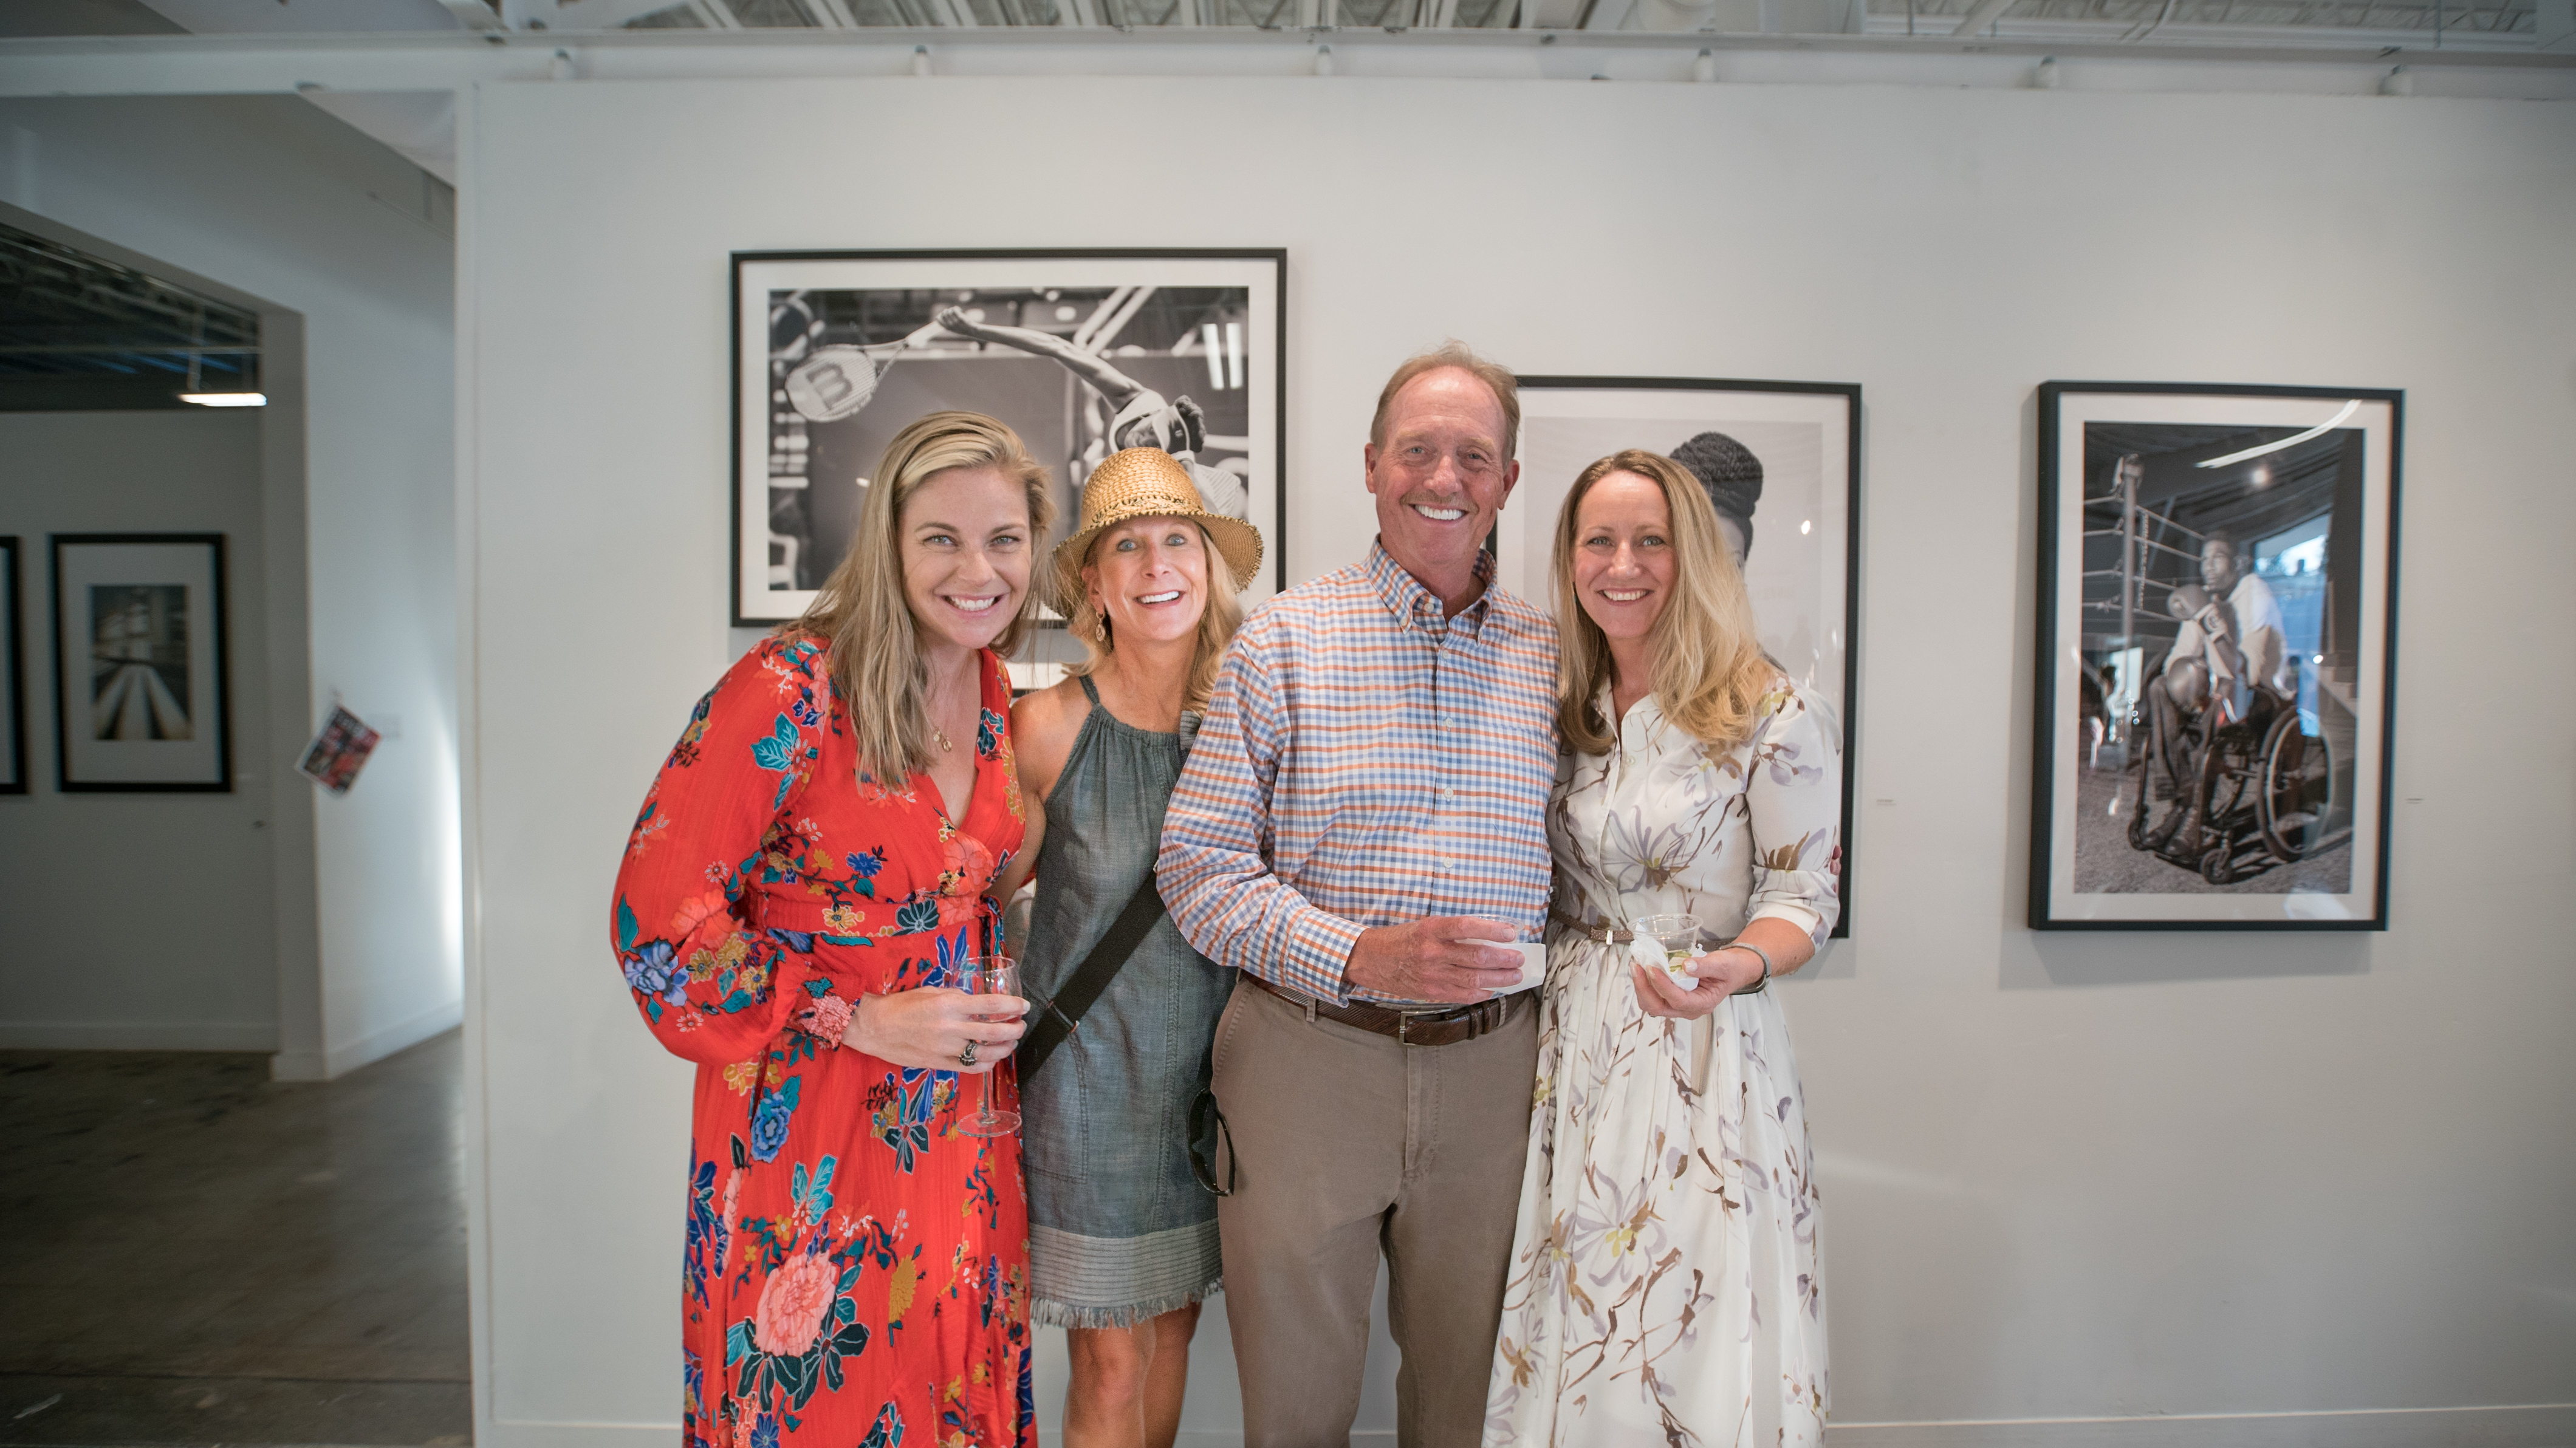 (Left to right) Alice Keeney, Kelly and David Lyle of Three Henry Wines, and Charleston editor-in-chief Darcy Shankland